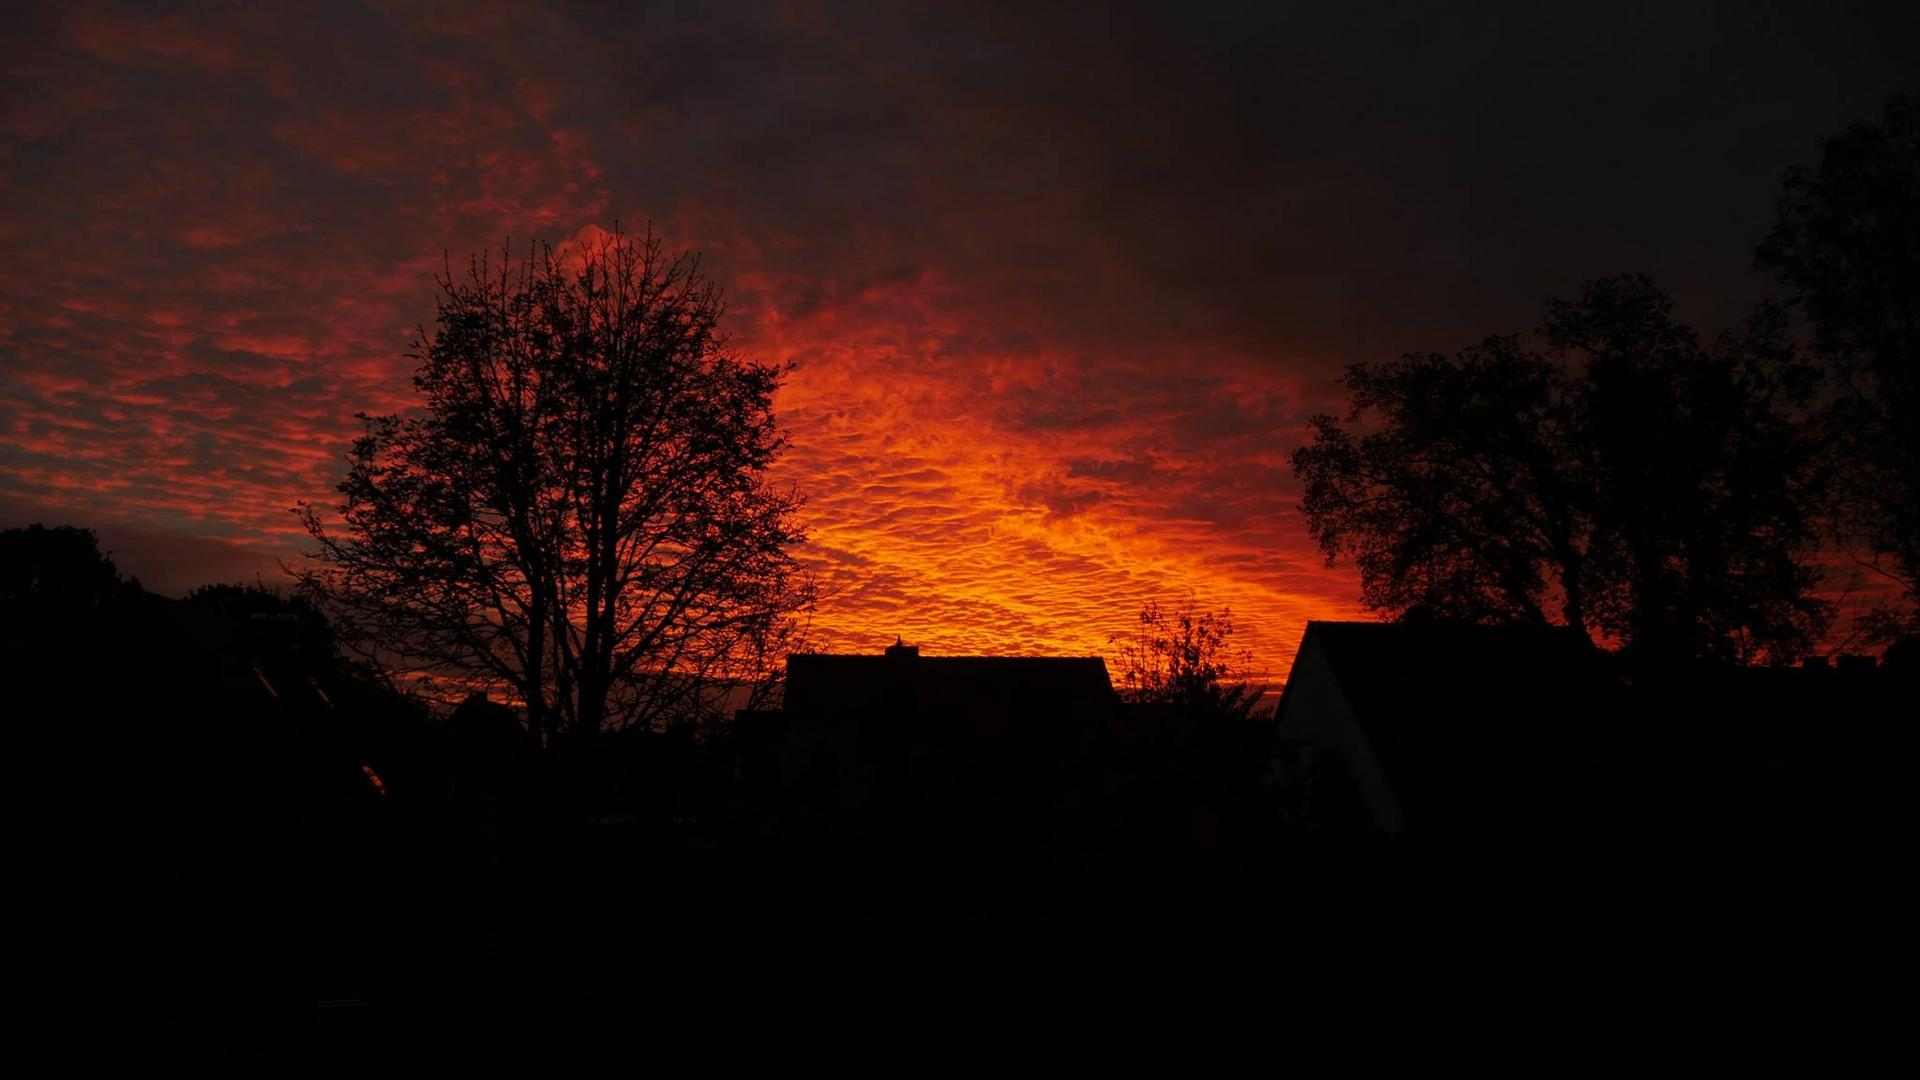 Morgenrot ist auch...